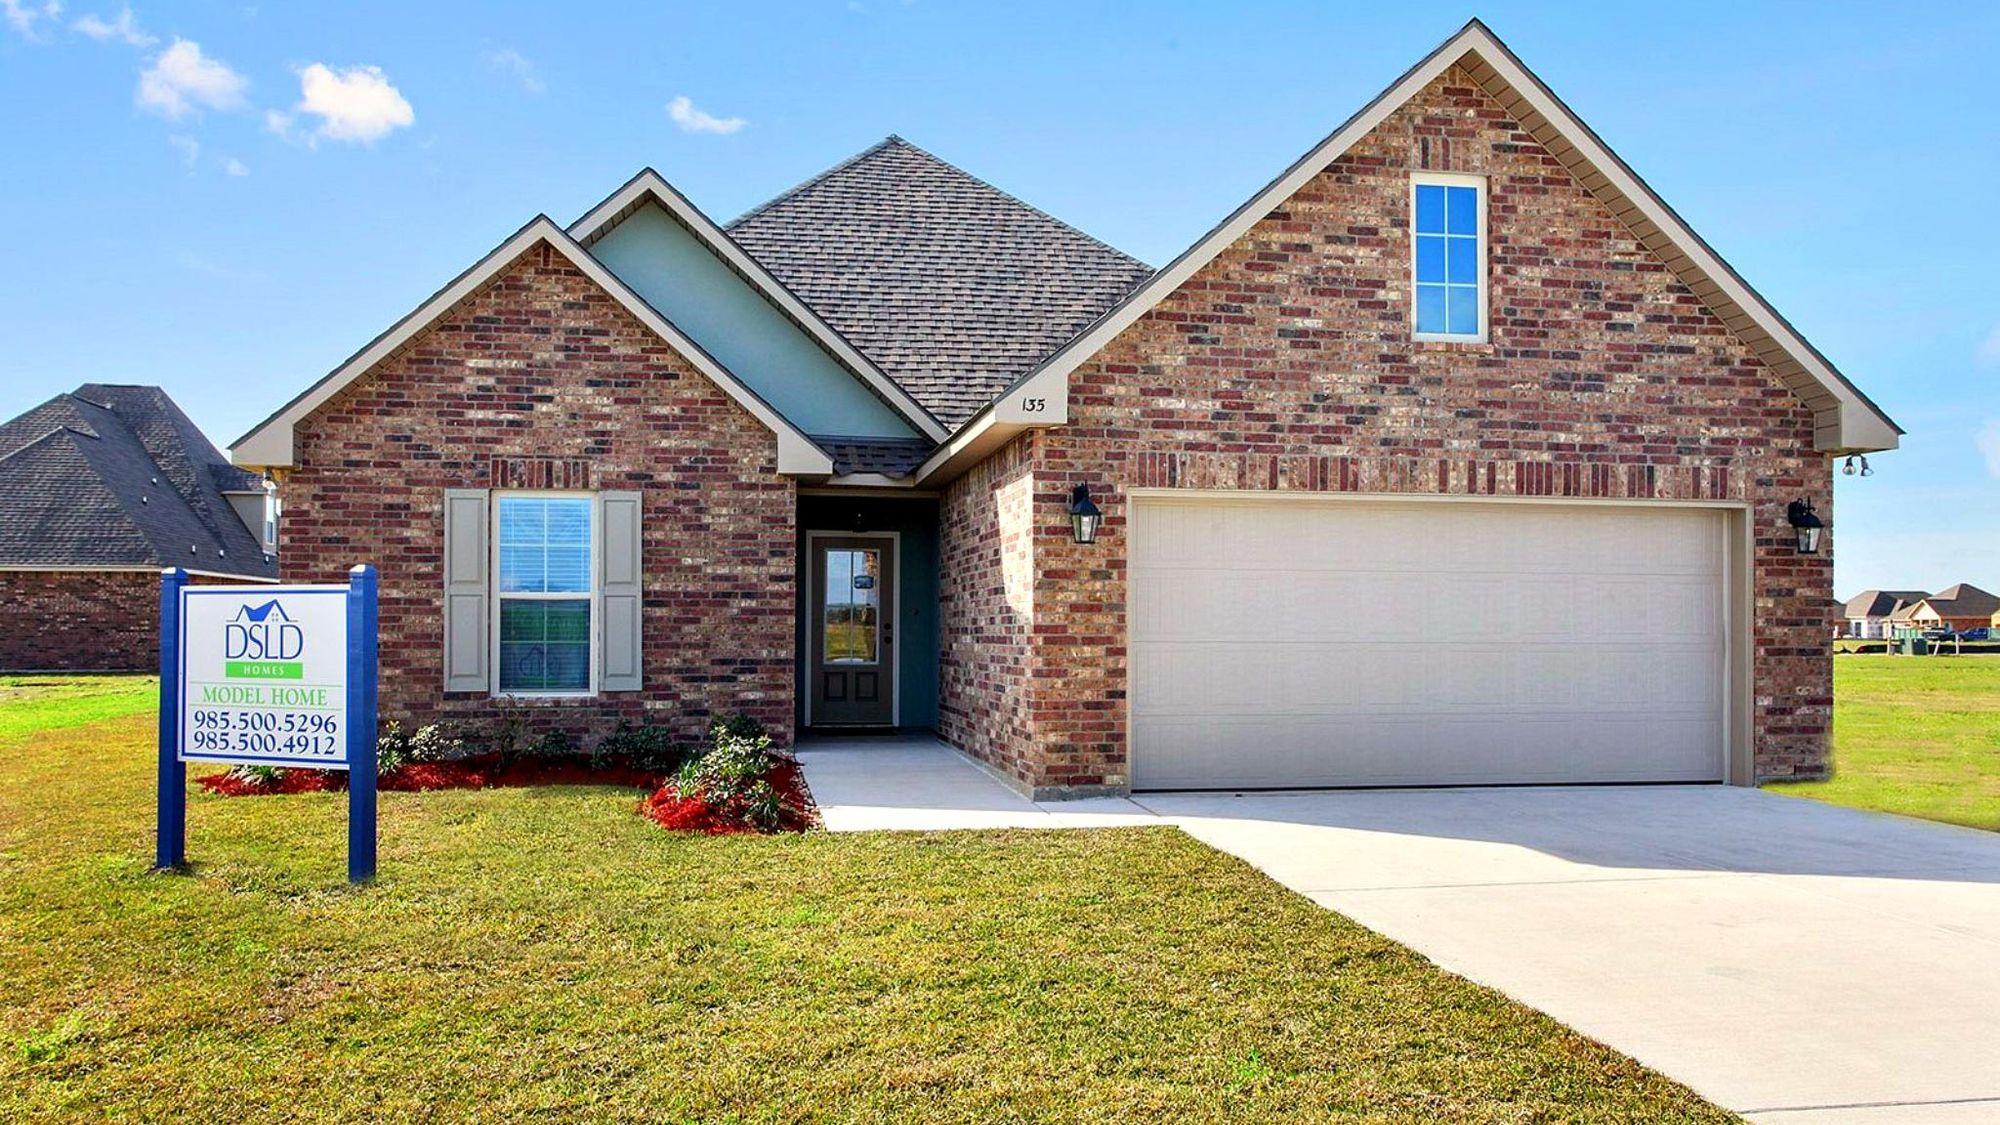 King George Estates Model Home Exterior - King George Estates Community - DSLD Homes - Thibodaux